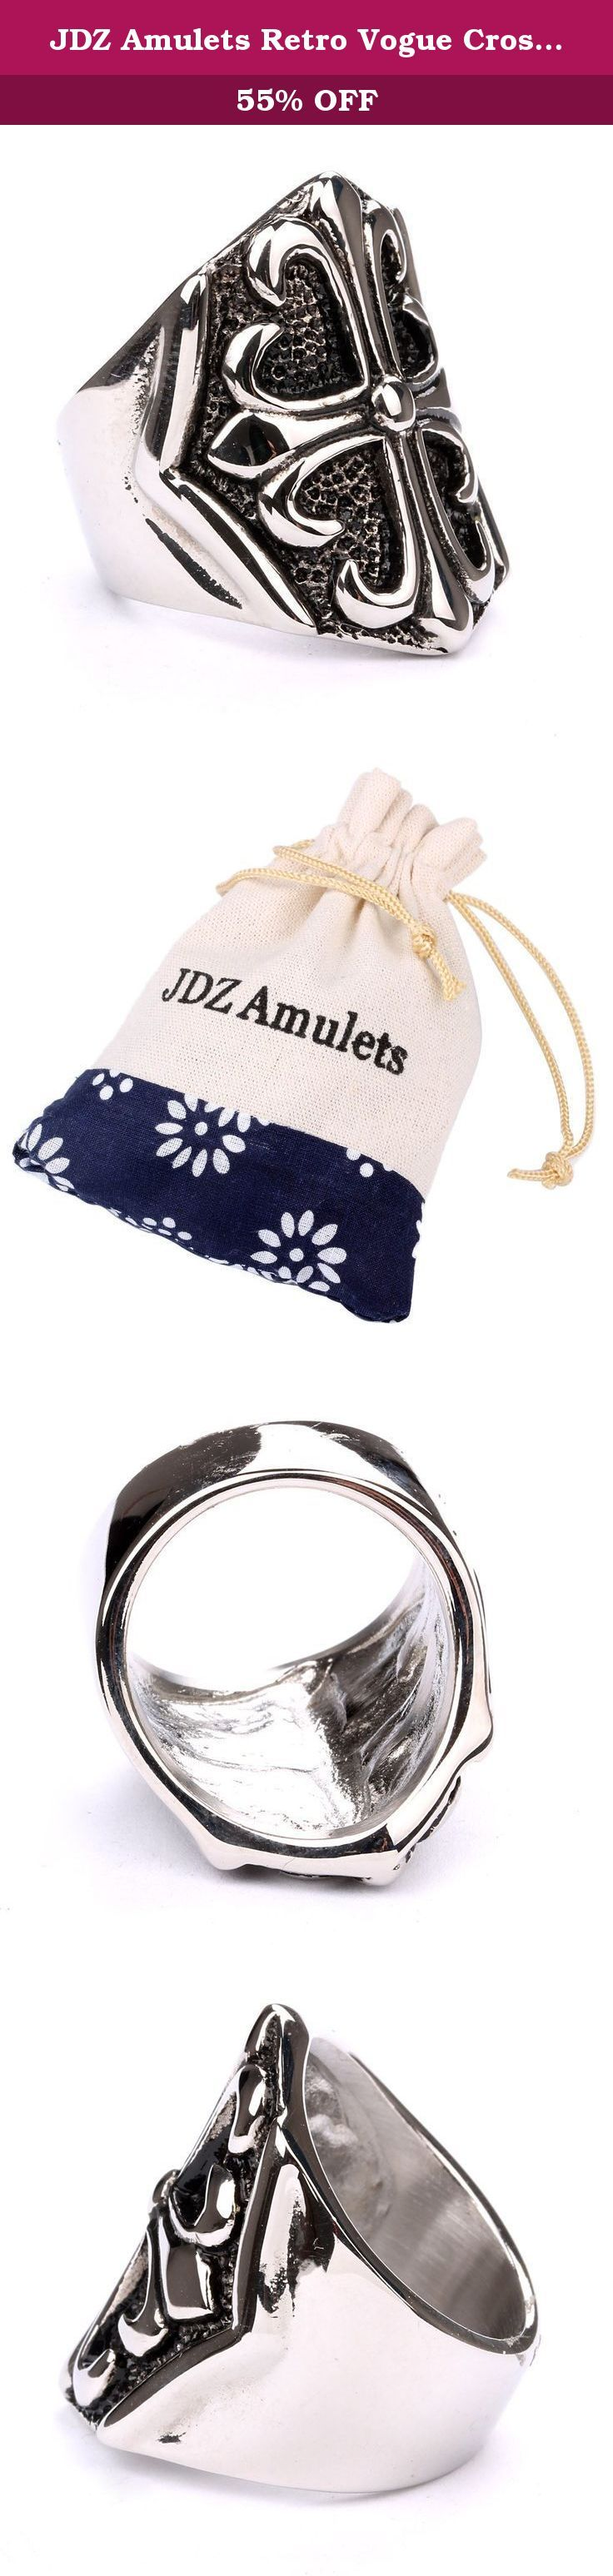 JDZ Amulets Retro Vogue Cross Stainless Steel Gothic Personality Knight Finger RingSP0582A08. Material:Stainless Steel Size:1.0x1.0inch Available sizes:8,9,10,11,12 Choose the high quality stainless steel let the ring looks shiny. The image may show a slight difference to the actual product in color and composition. .